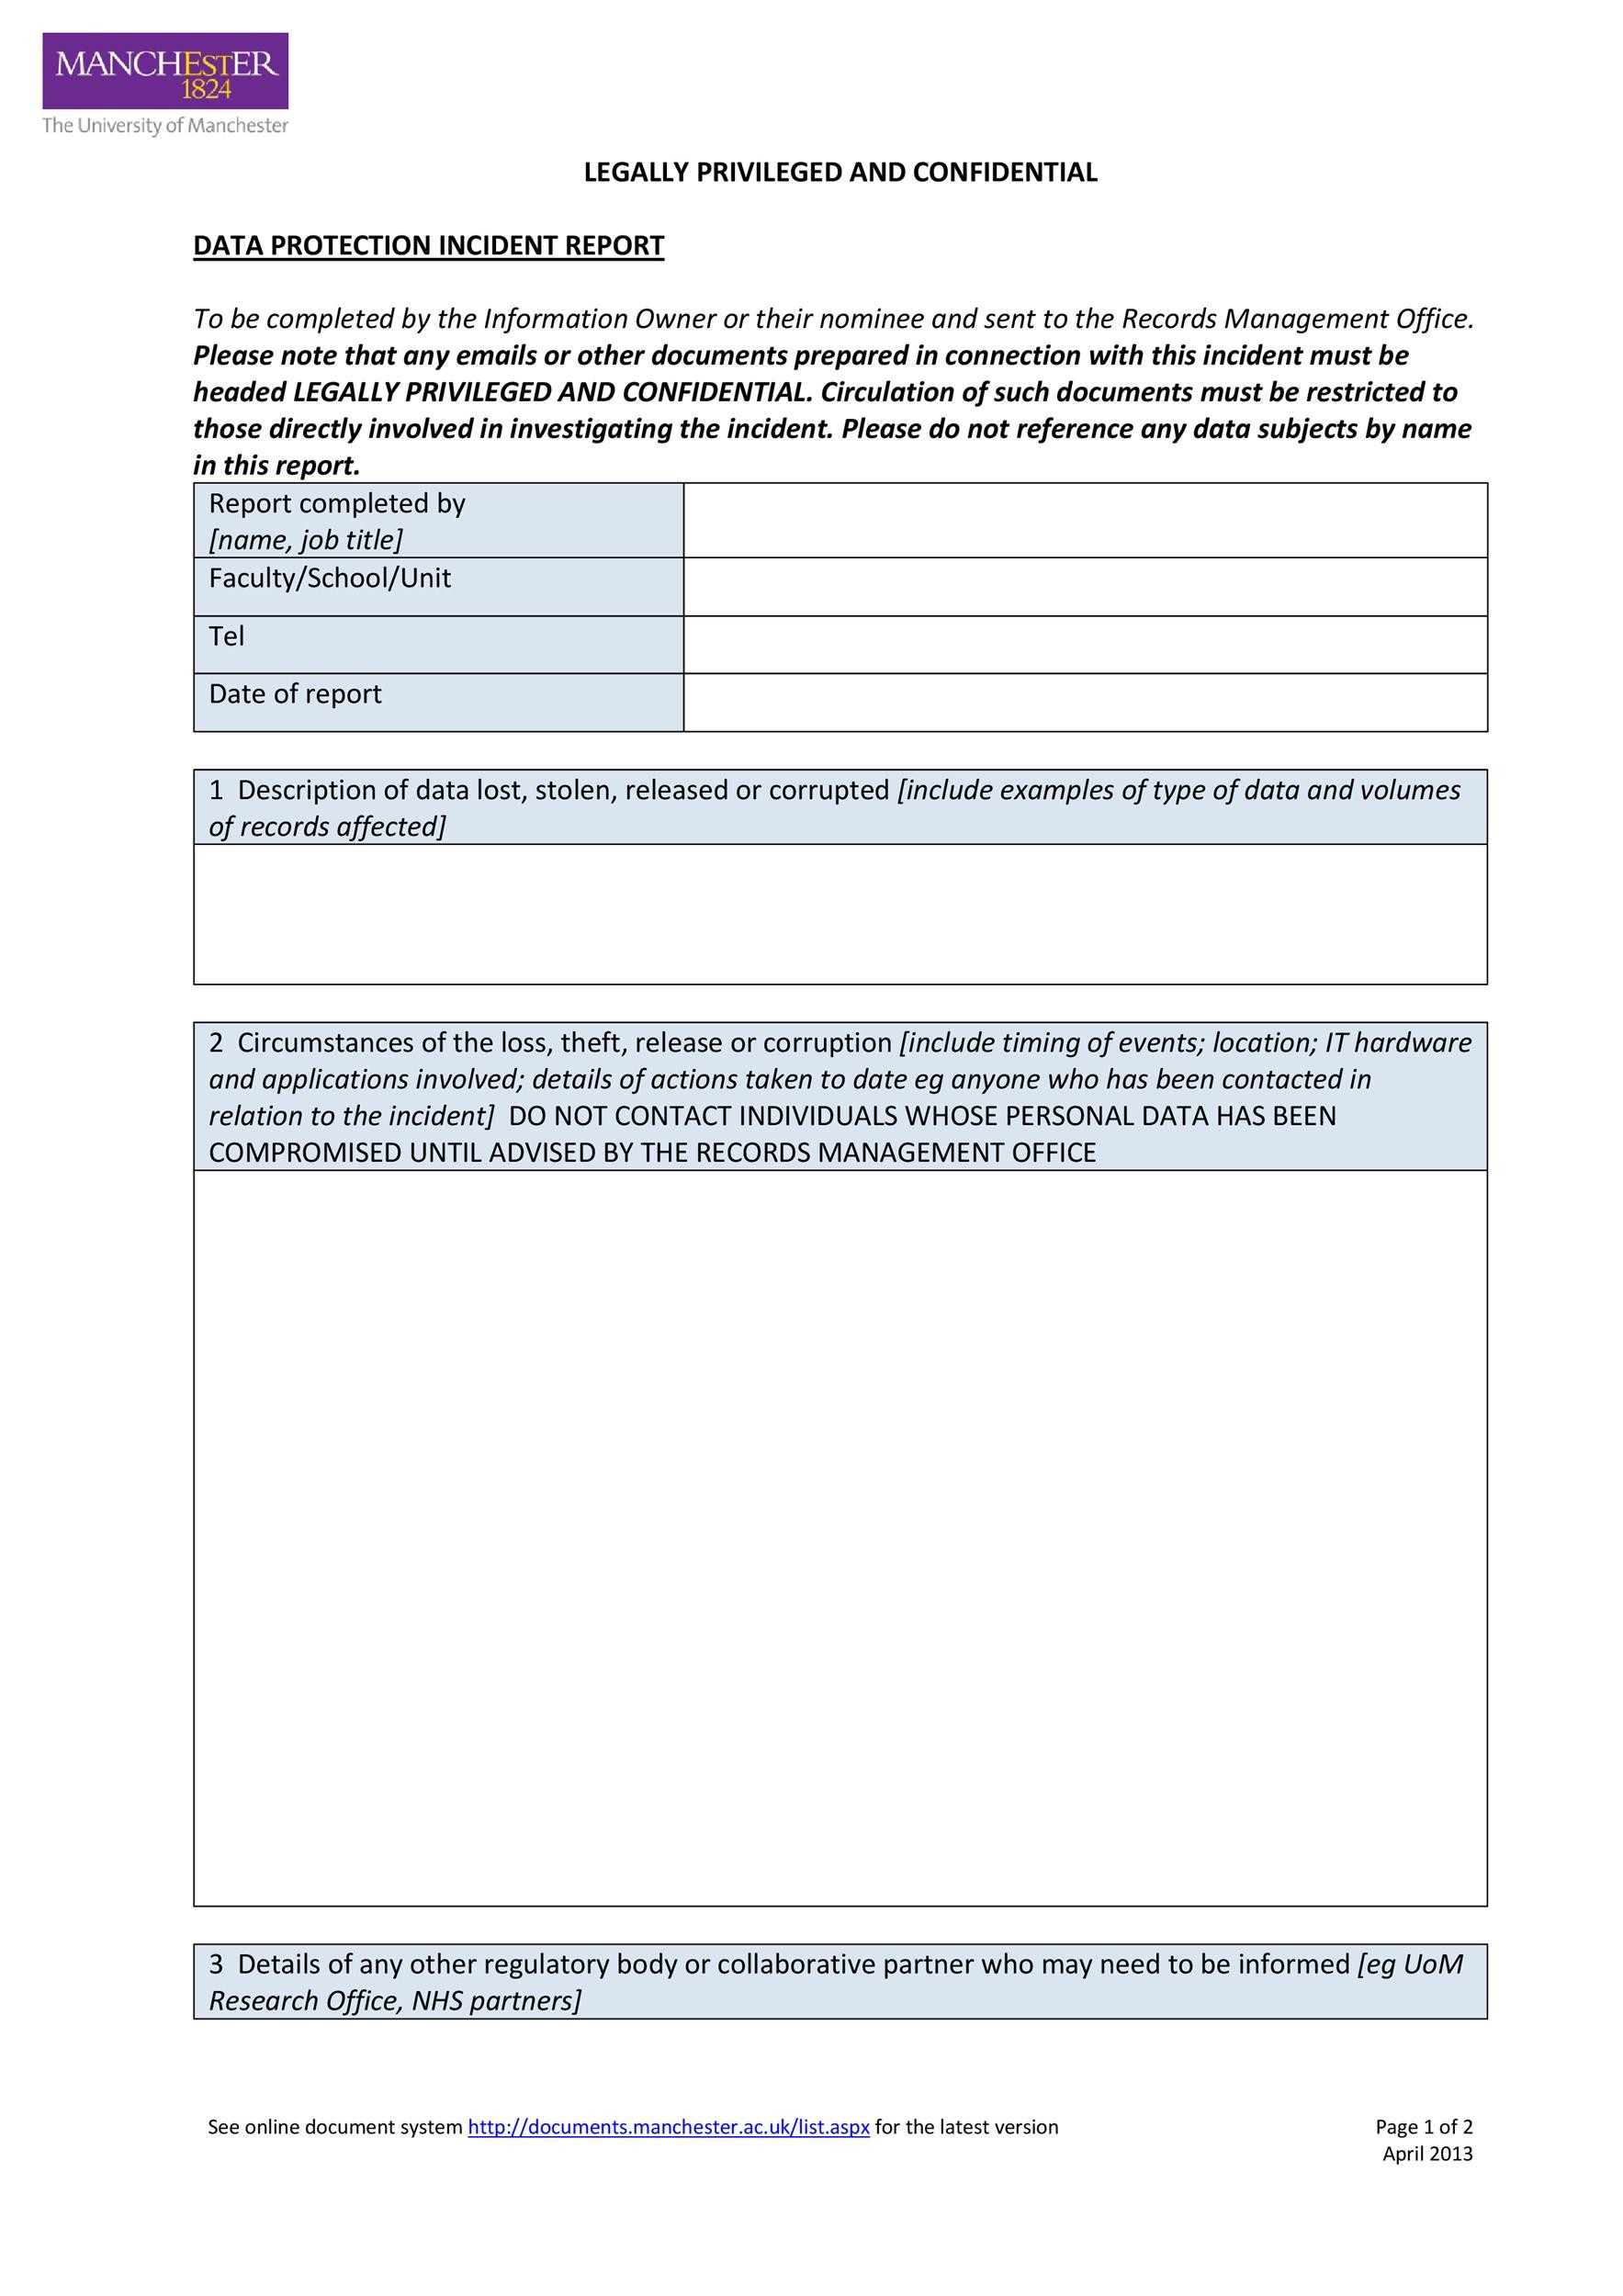 60+ Incident Report Template [Employee, Police, Generic